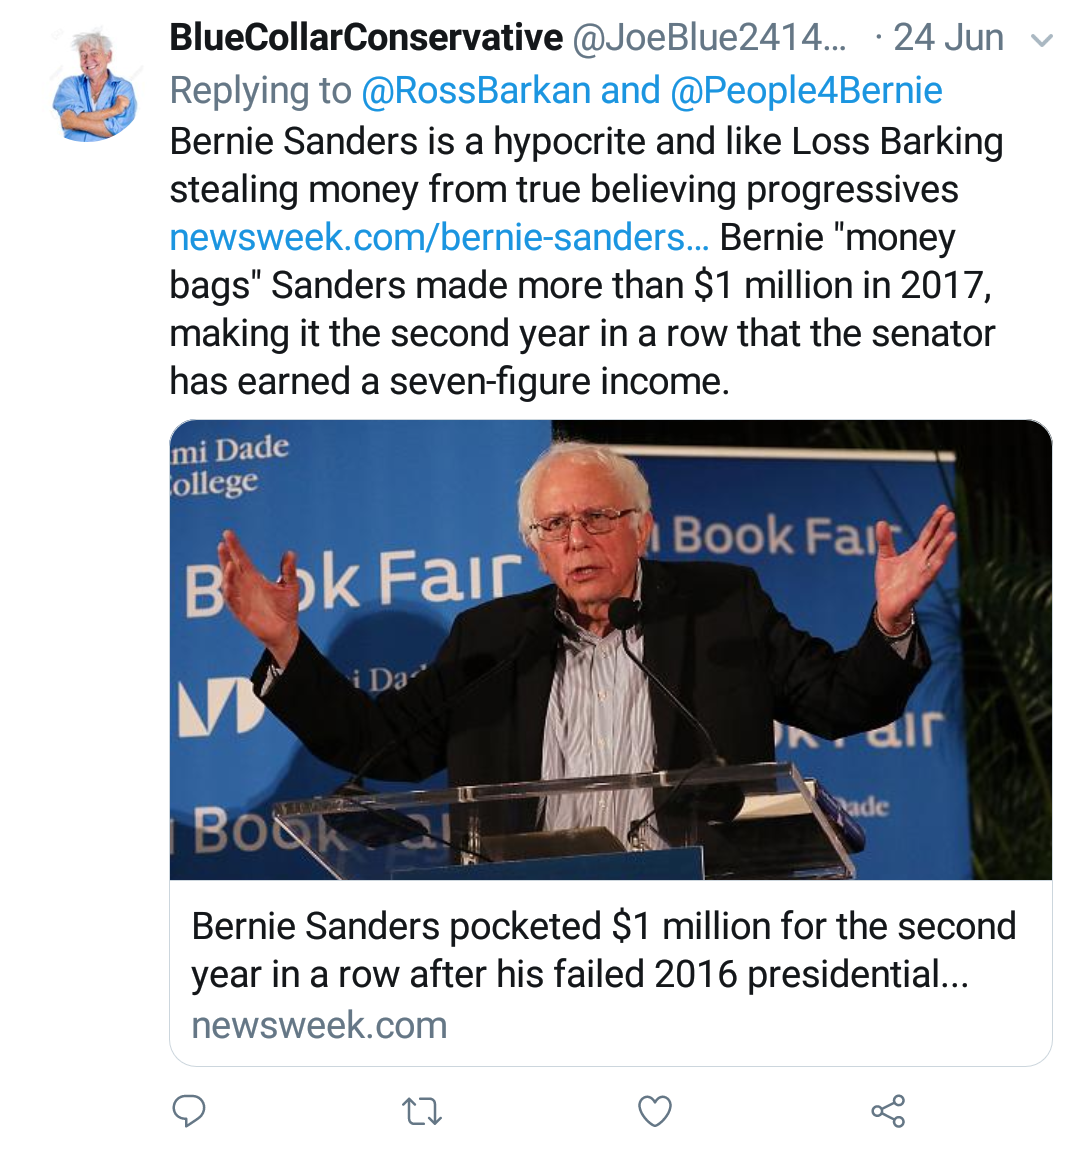 "Blue Collar Conservative Tweeted: ""Bernie Sanders is a hypocrite and like Loss Barking stealing money from true believing progressives. Bernie ""money bags"" sanders made more than $1 million in 2017, making it the second year in a row that the senator has earned a seven-figure income."" linking to a newsweek.com article."